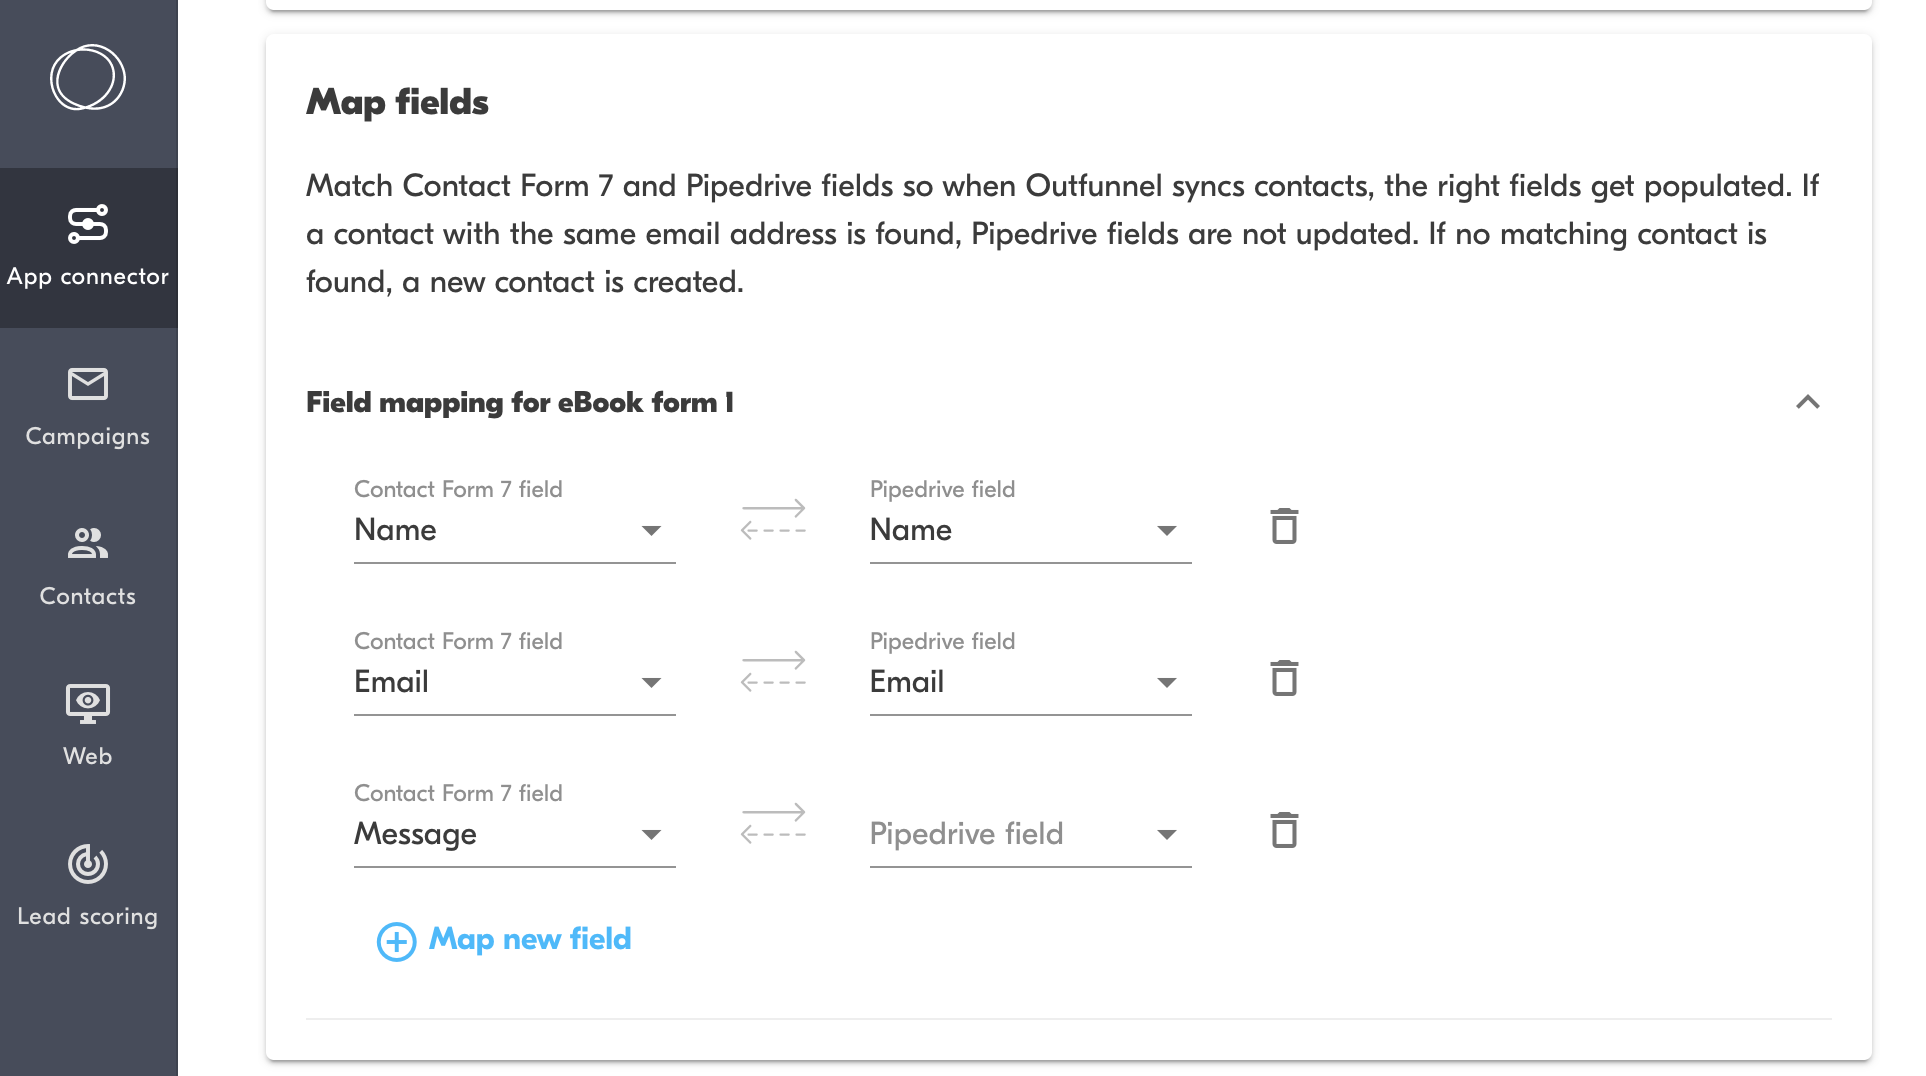 map fields between contact form 7 and pipedrive